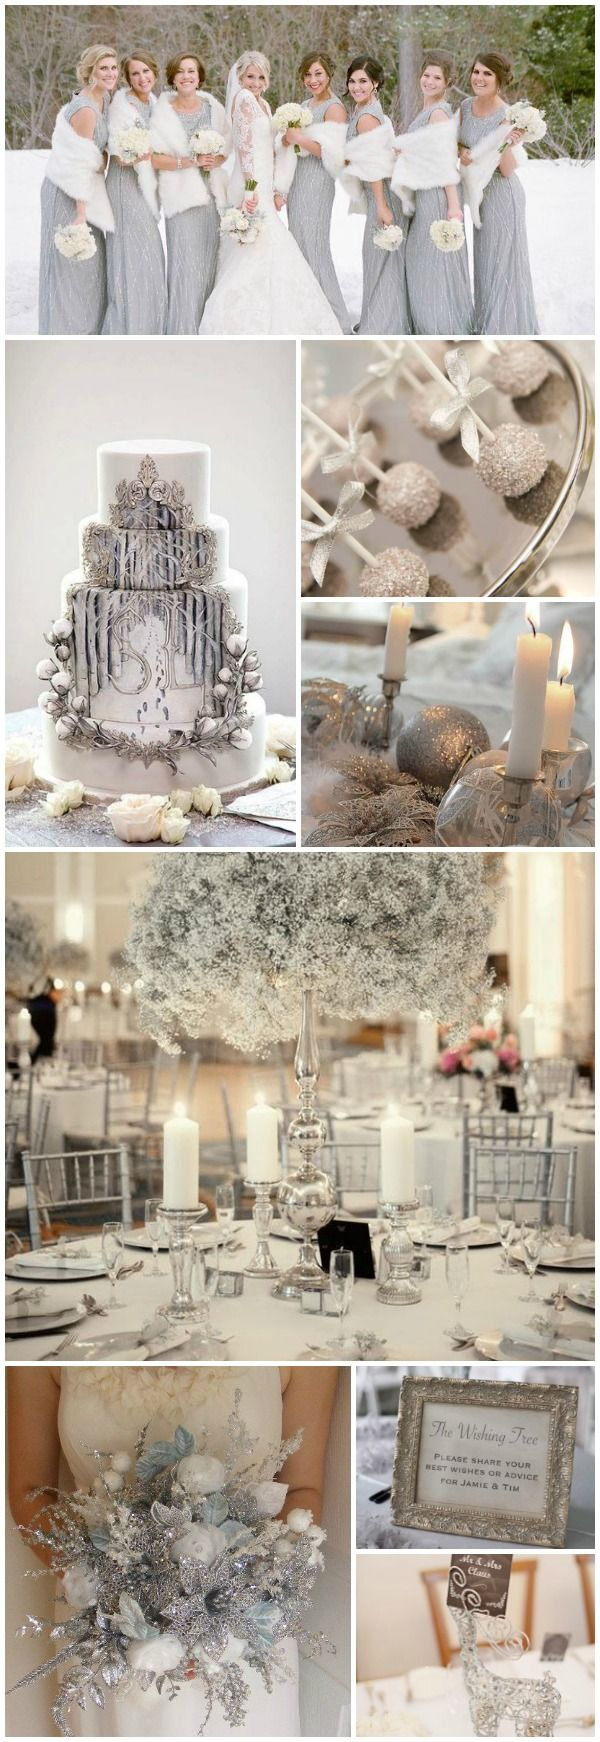 Top 6 incredible winter wonderland wedding decorations ideas exquisite silver and white winter wedding decorations junglespirit Choice Image